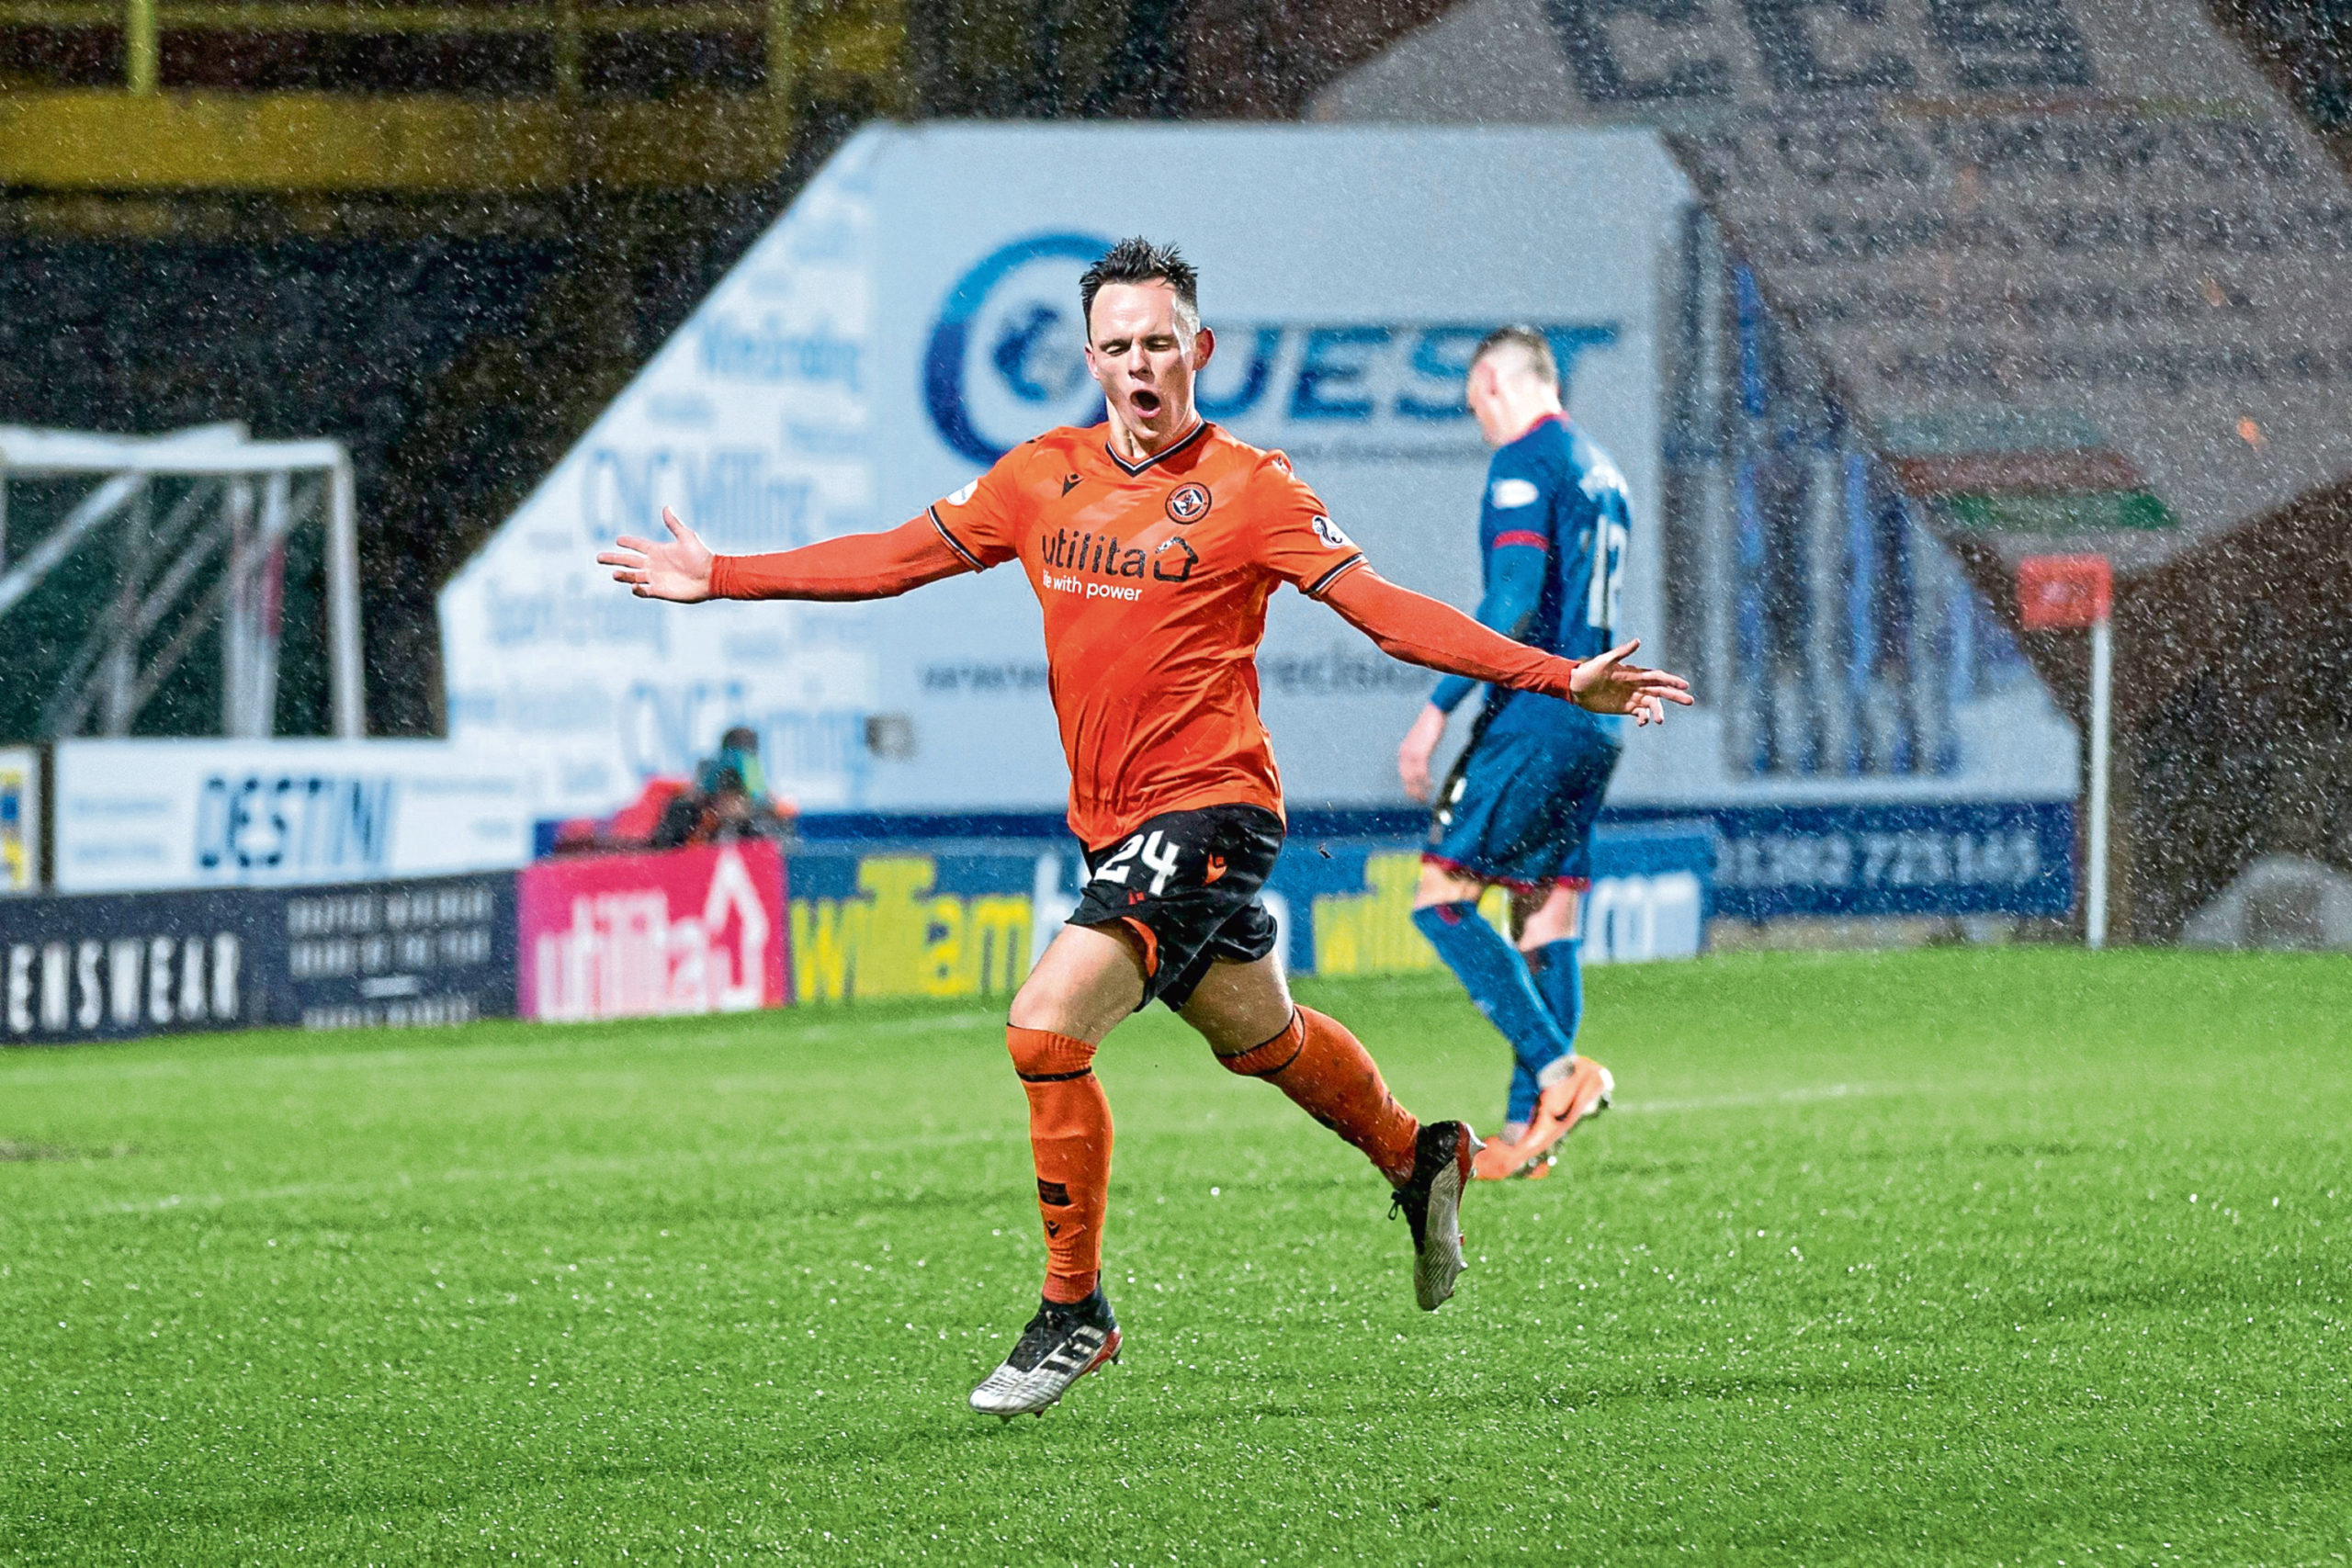 Lawrence Shankland's form at United has caught the eye of clubs north and south of the border.